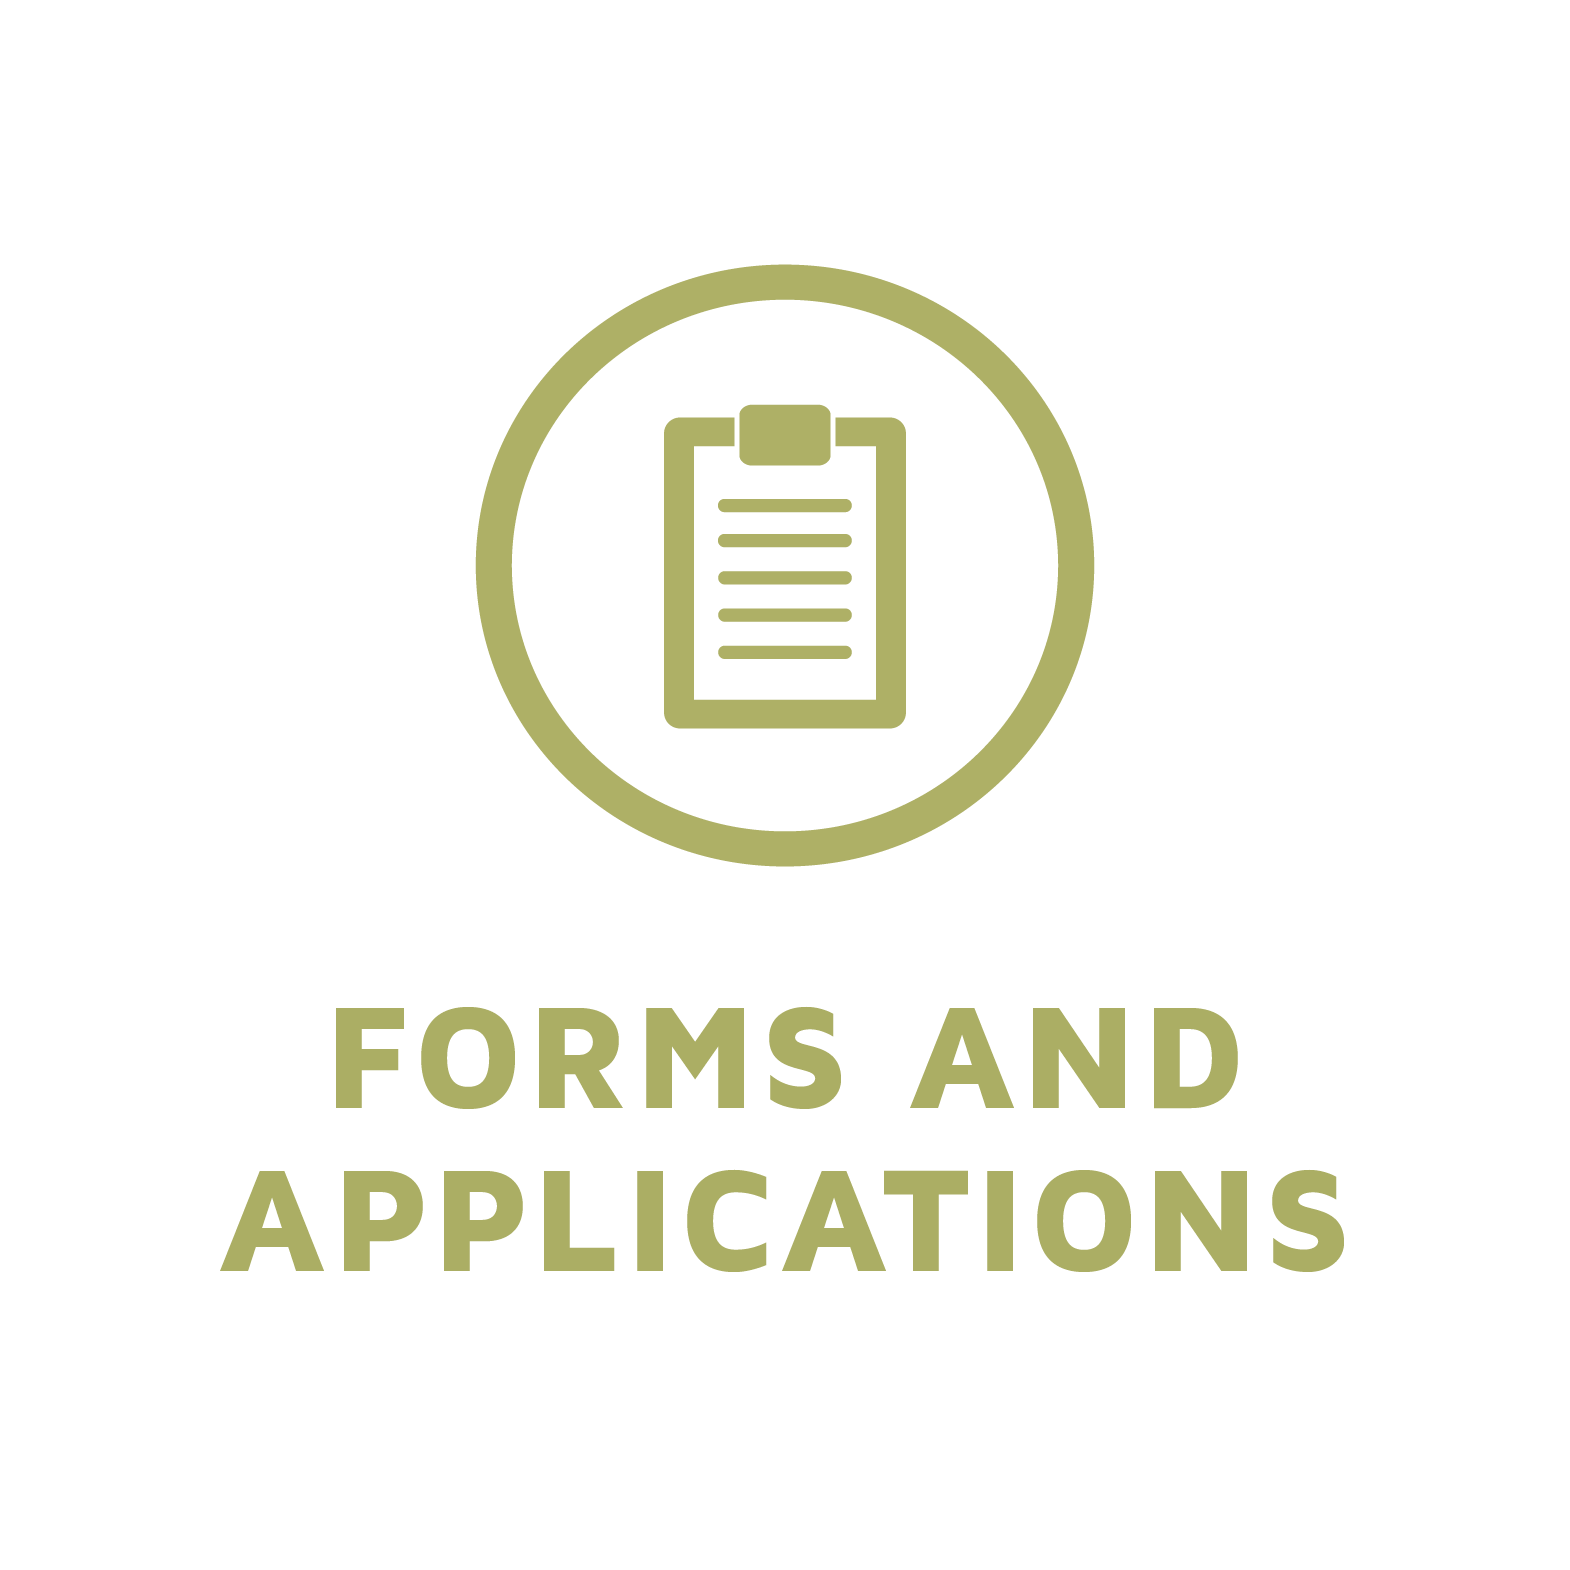 Forms and Applications Tile